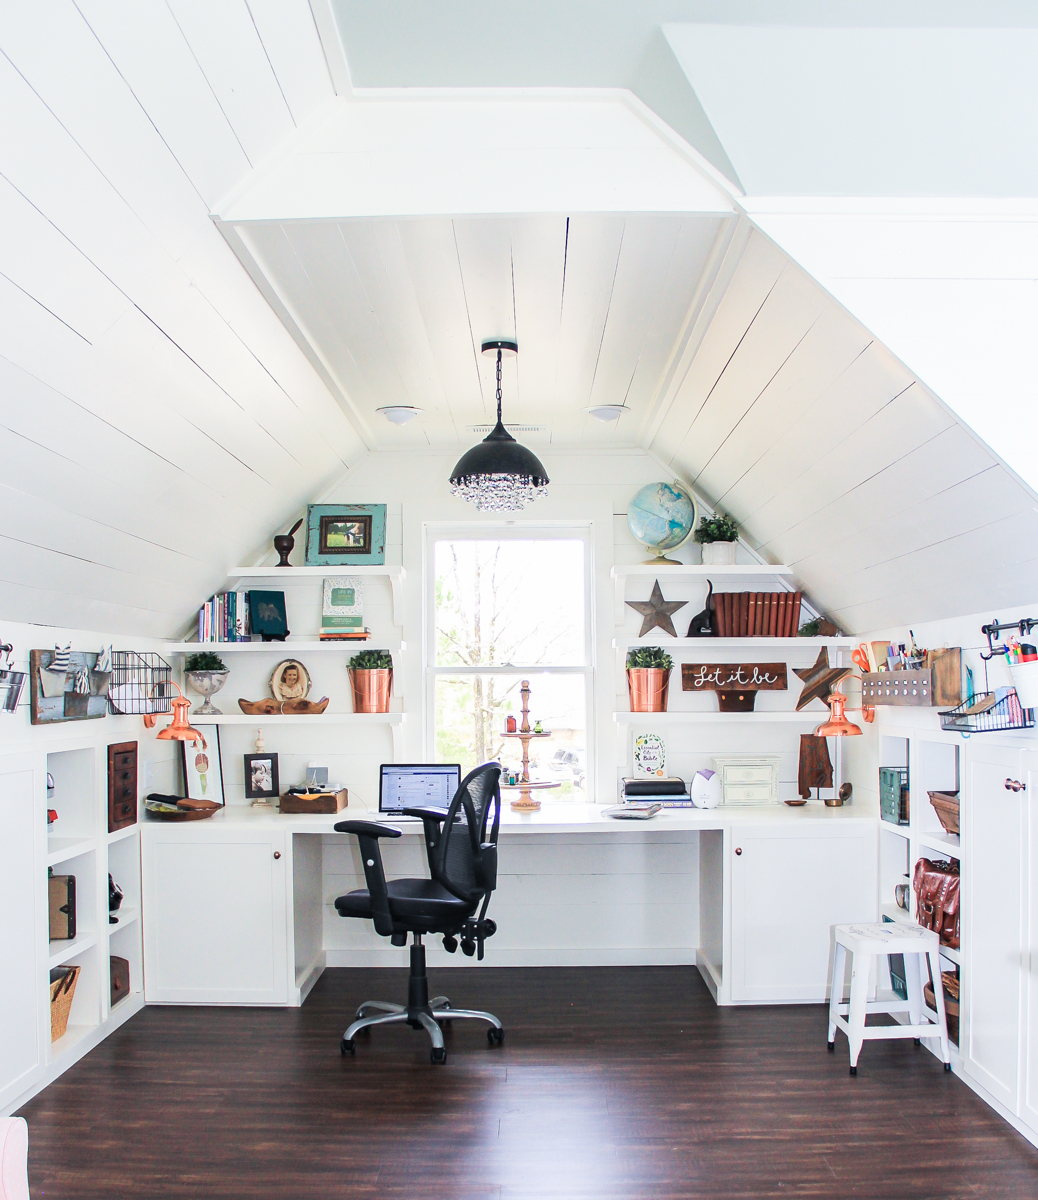 Renovated Attic Playroom- Office-Craft Room by Unskinny Boppy-22